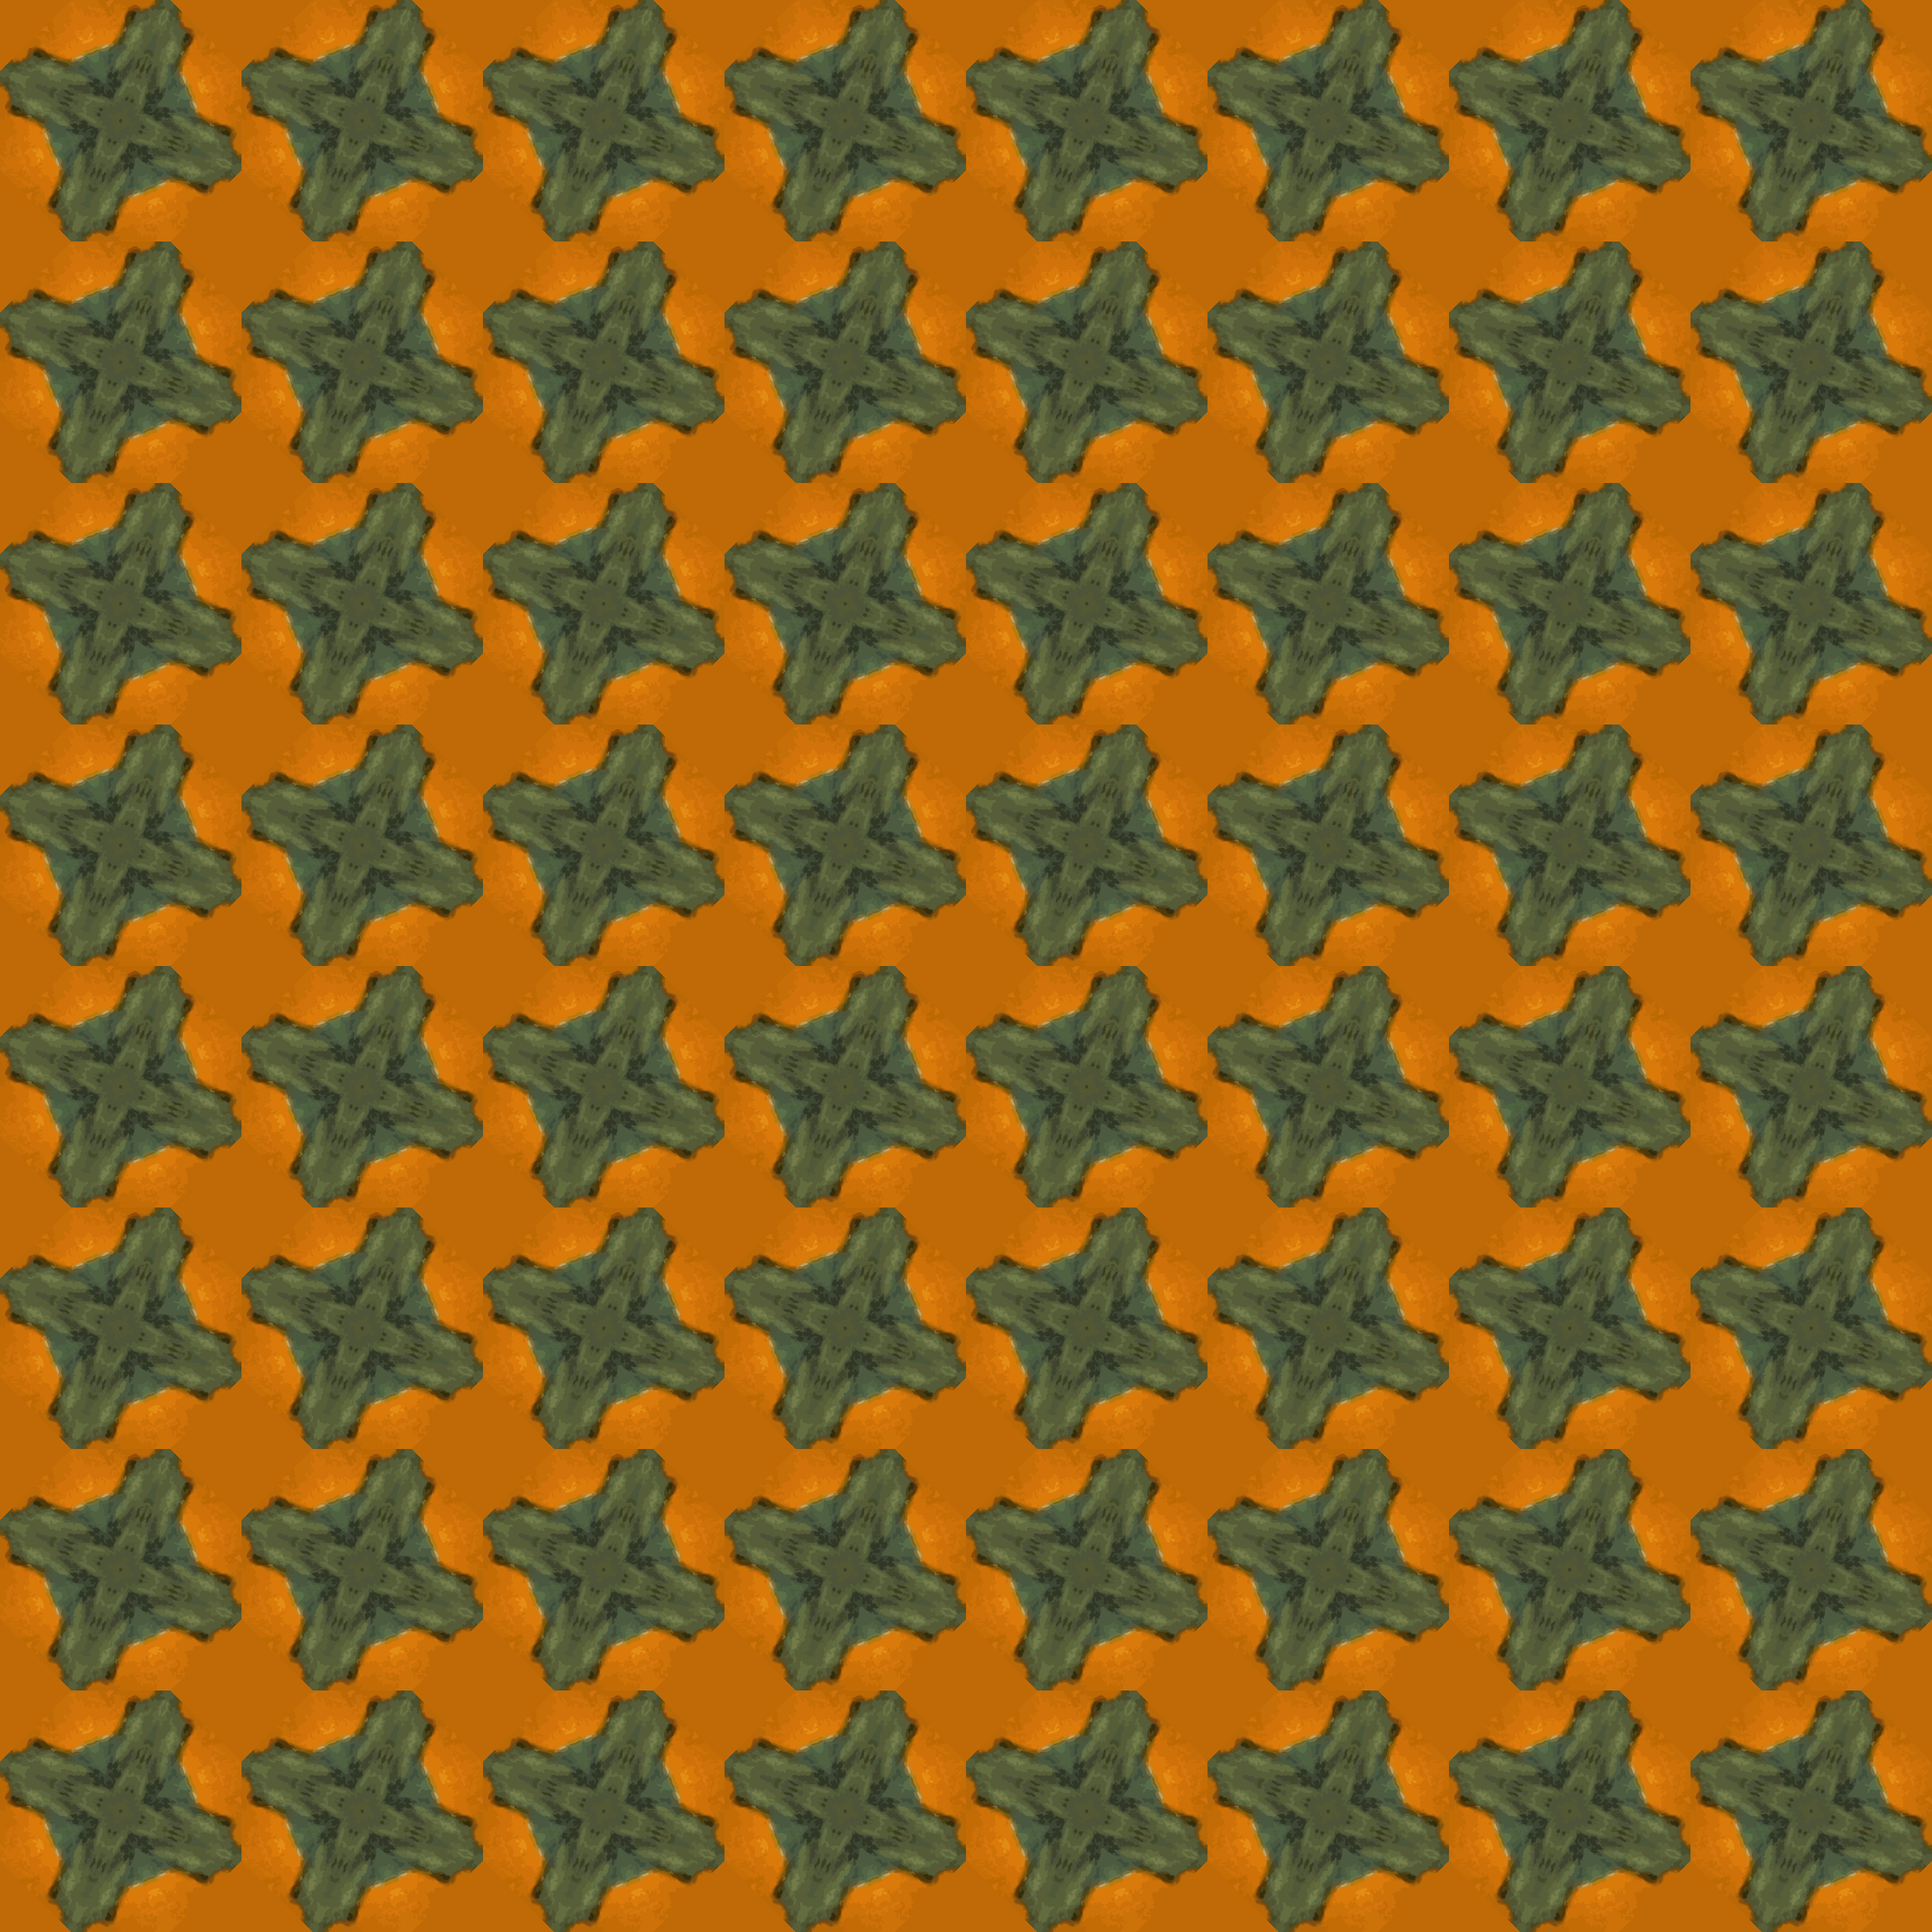 Background pattern 181 by Firkin